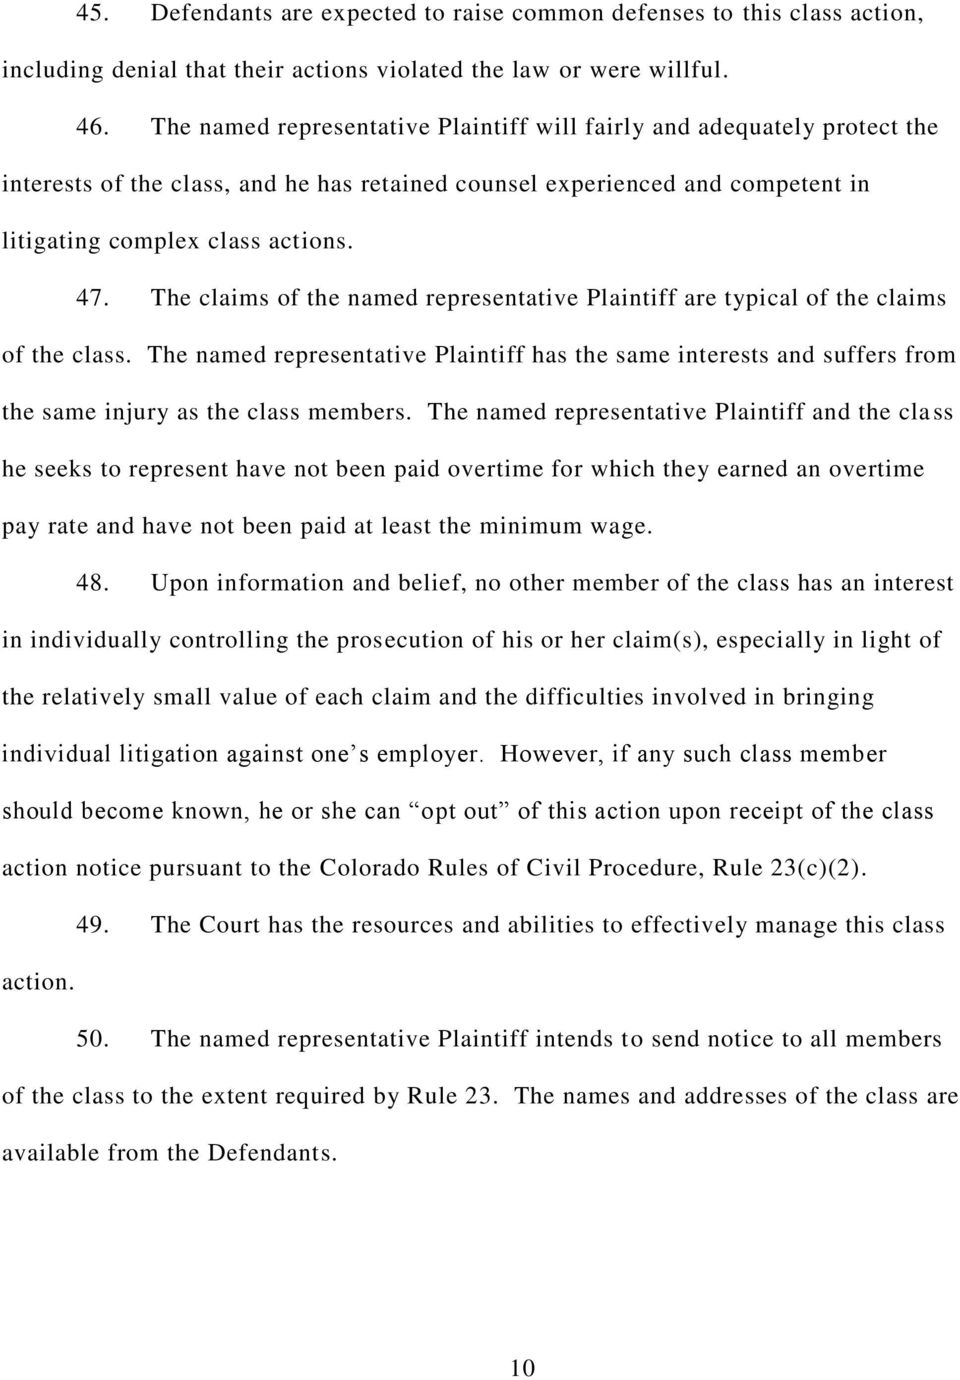 The claims of the named representative Plaintiff are typical of the claims of the class.